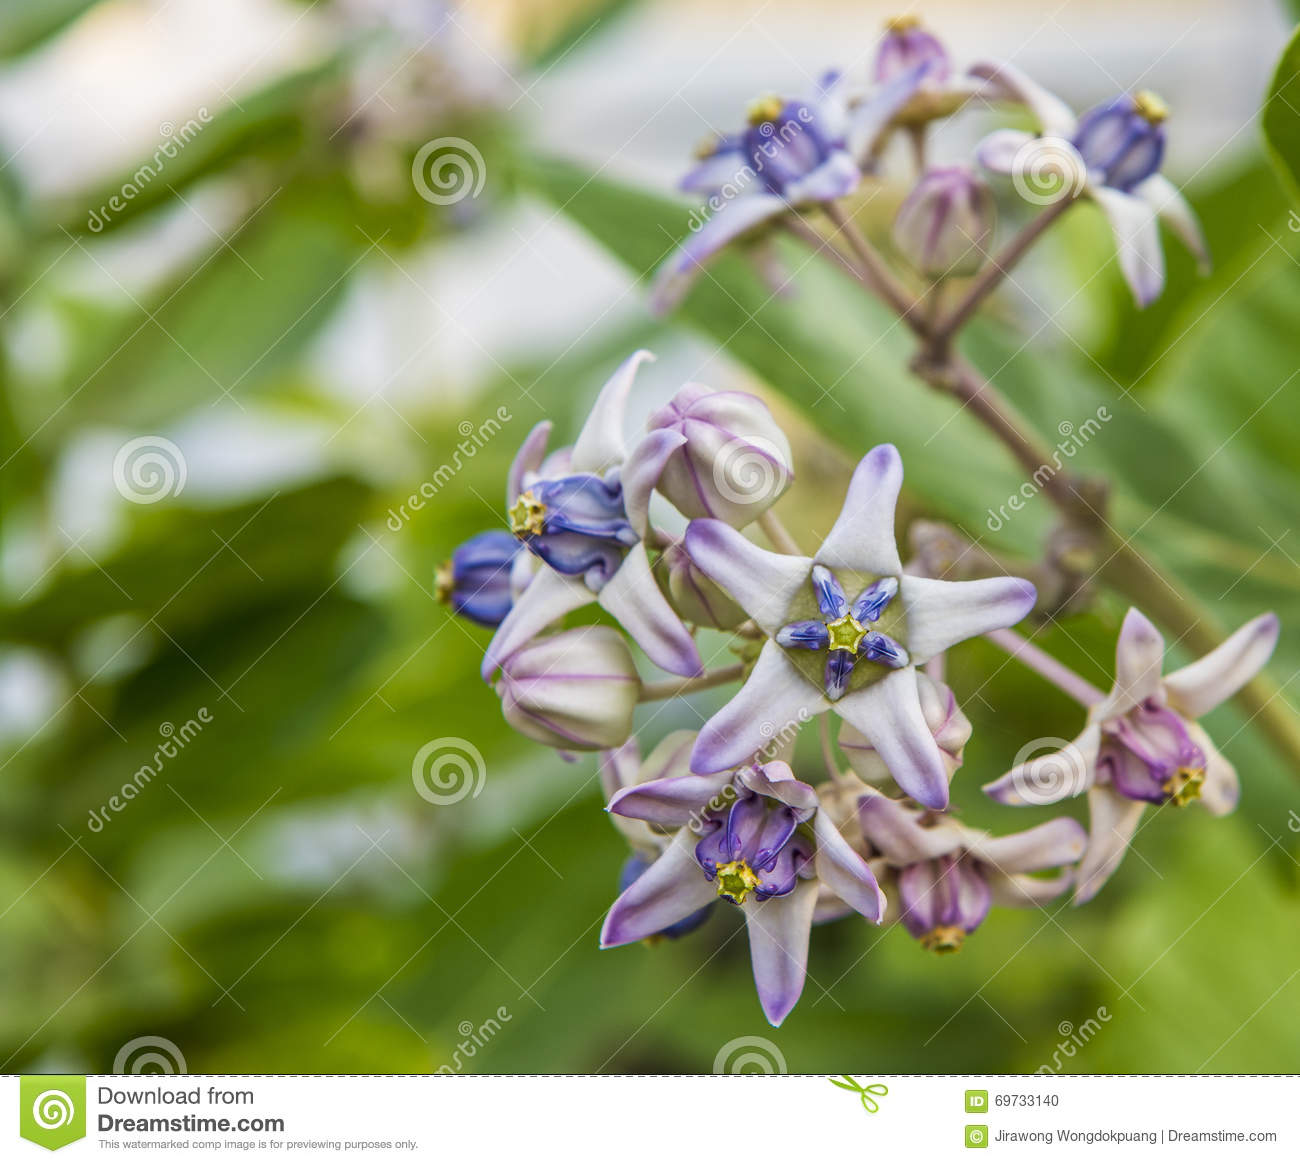 Calotropis Colorful White And Purple Flower Crown Flower Stock